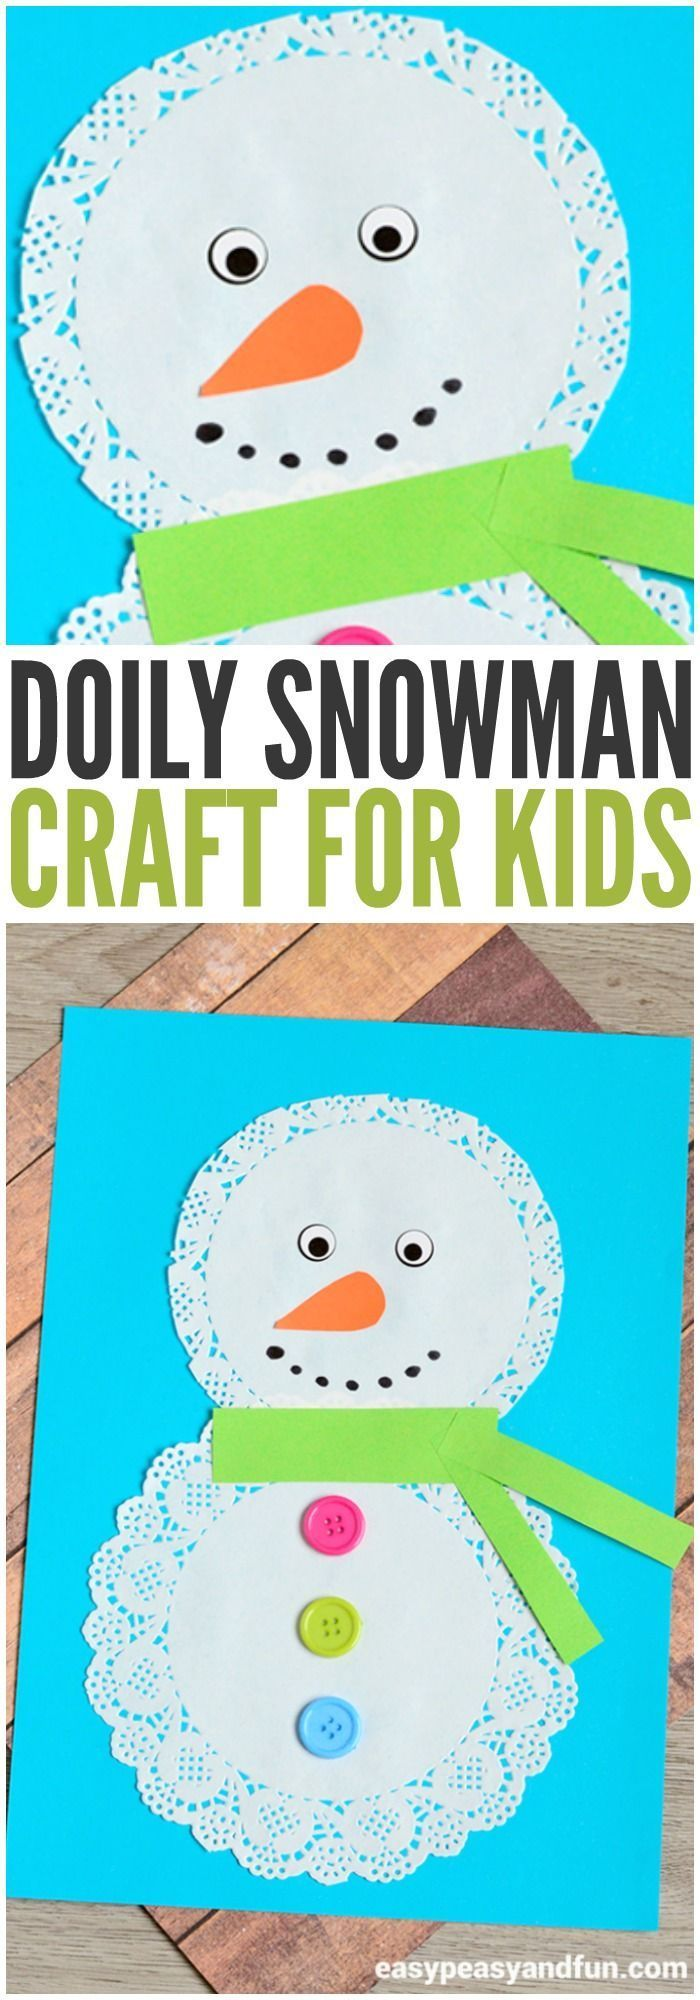 Adorable snowman craft to make from a doily! Perfect winter craft for preschoolers!